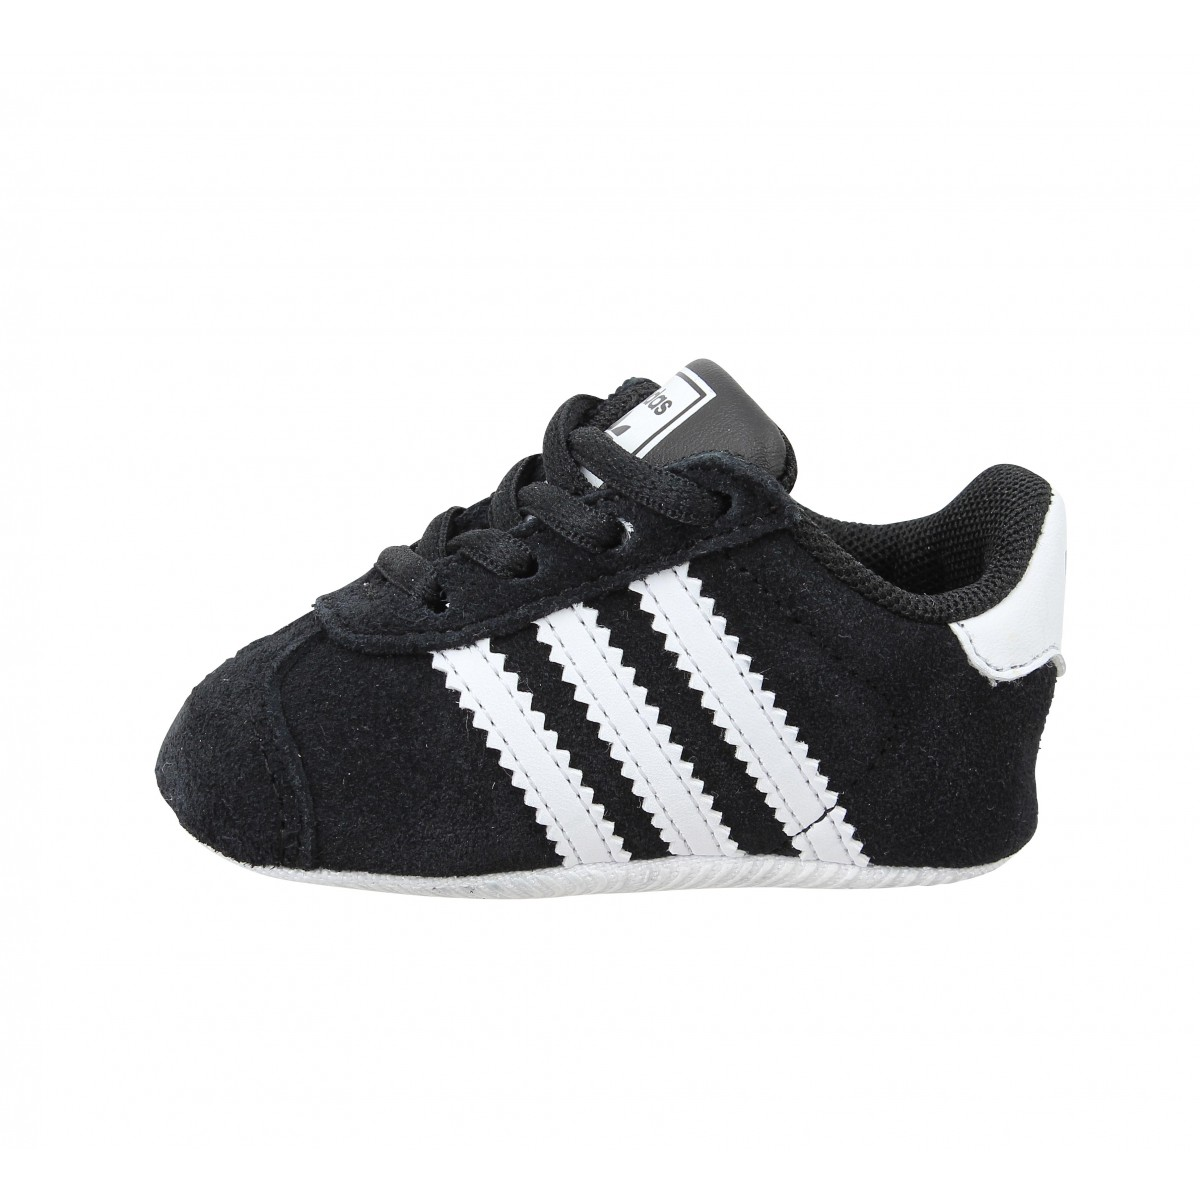 Baskets ADIDAS Gazelle Crib Noir. 1